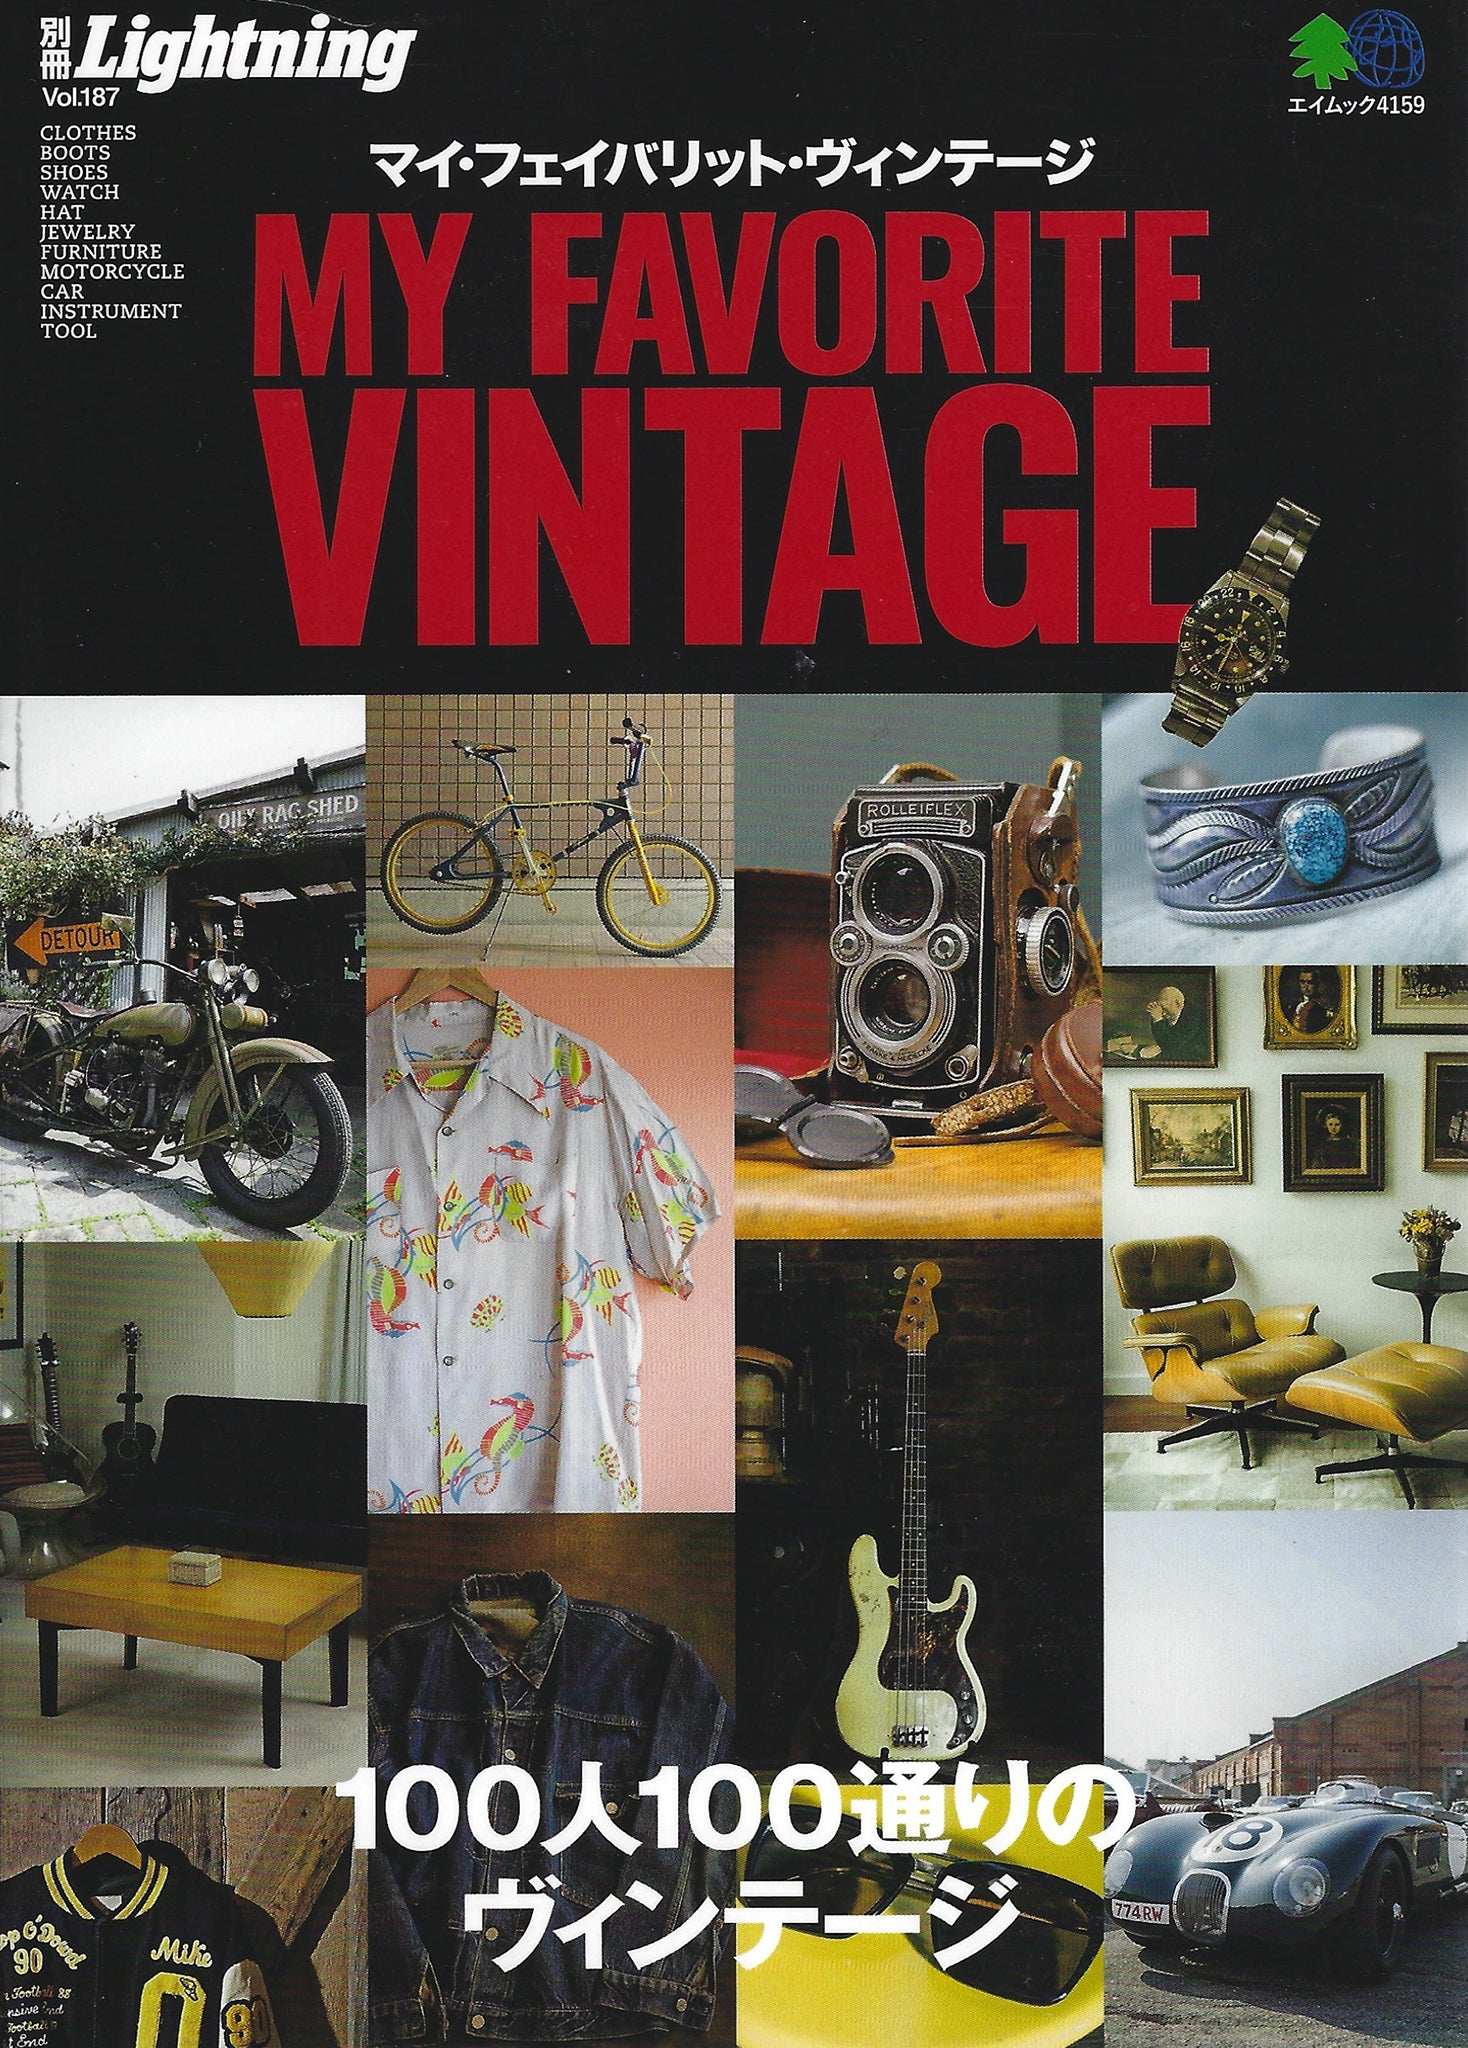 Blluemade Press: Lightning Special Edition Vol. 187 My Favorite Vintage September 201